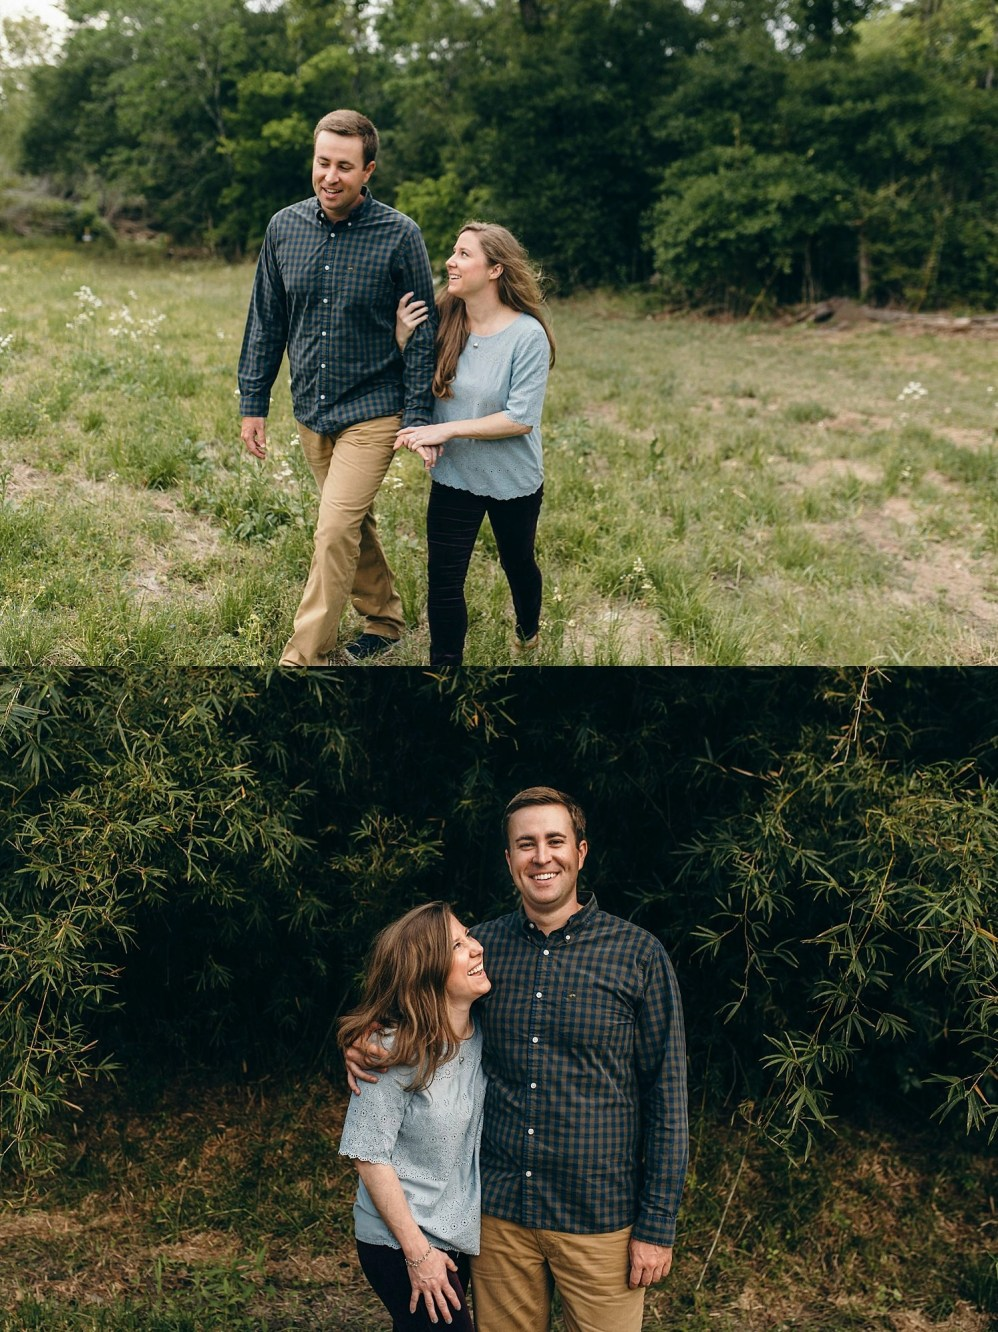 using 1776 park as a substitute for swampy engagement pictures